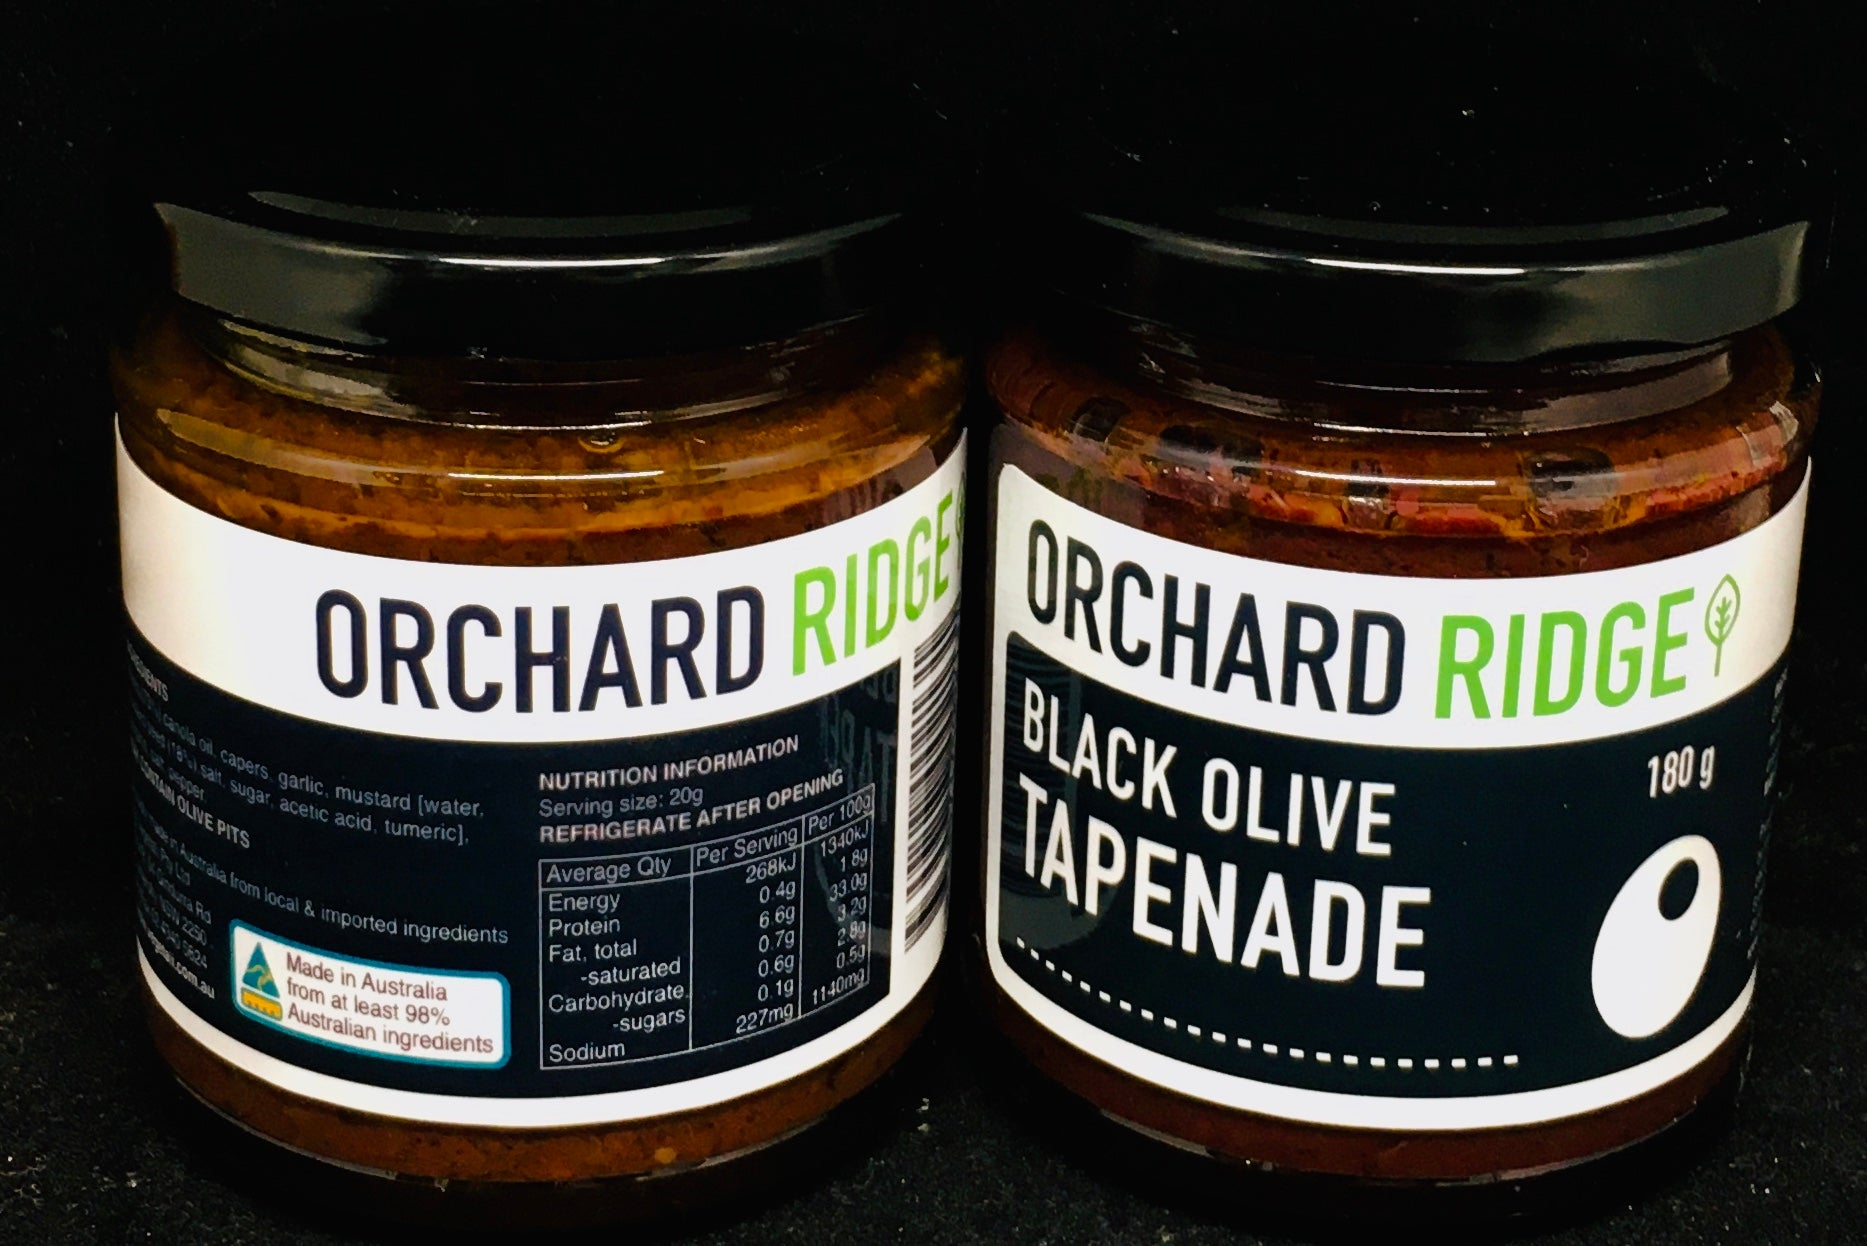 Orchard Ridge Black Olive Tapenade